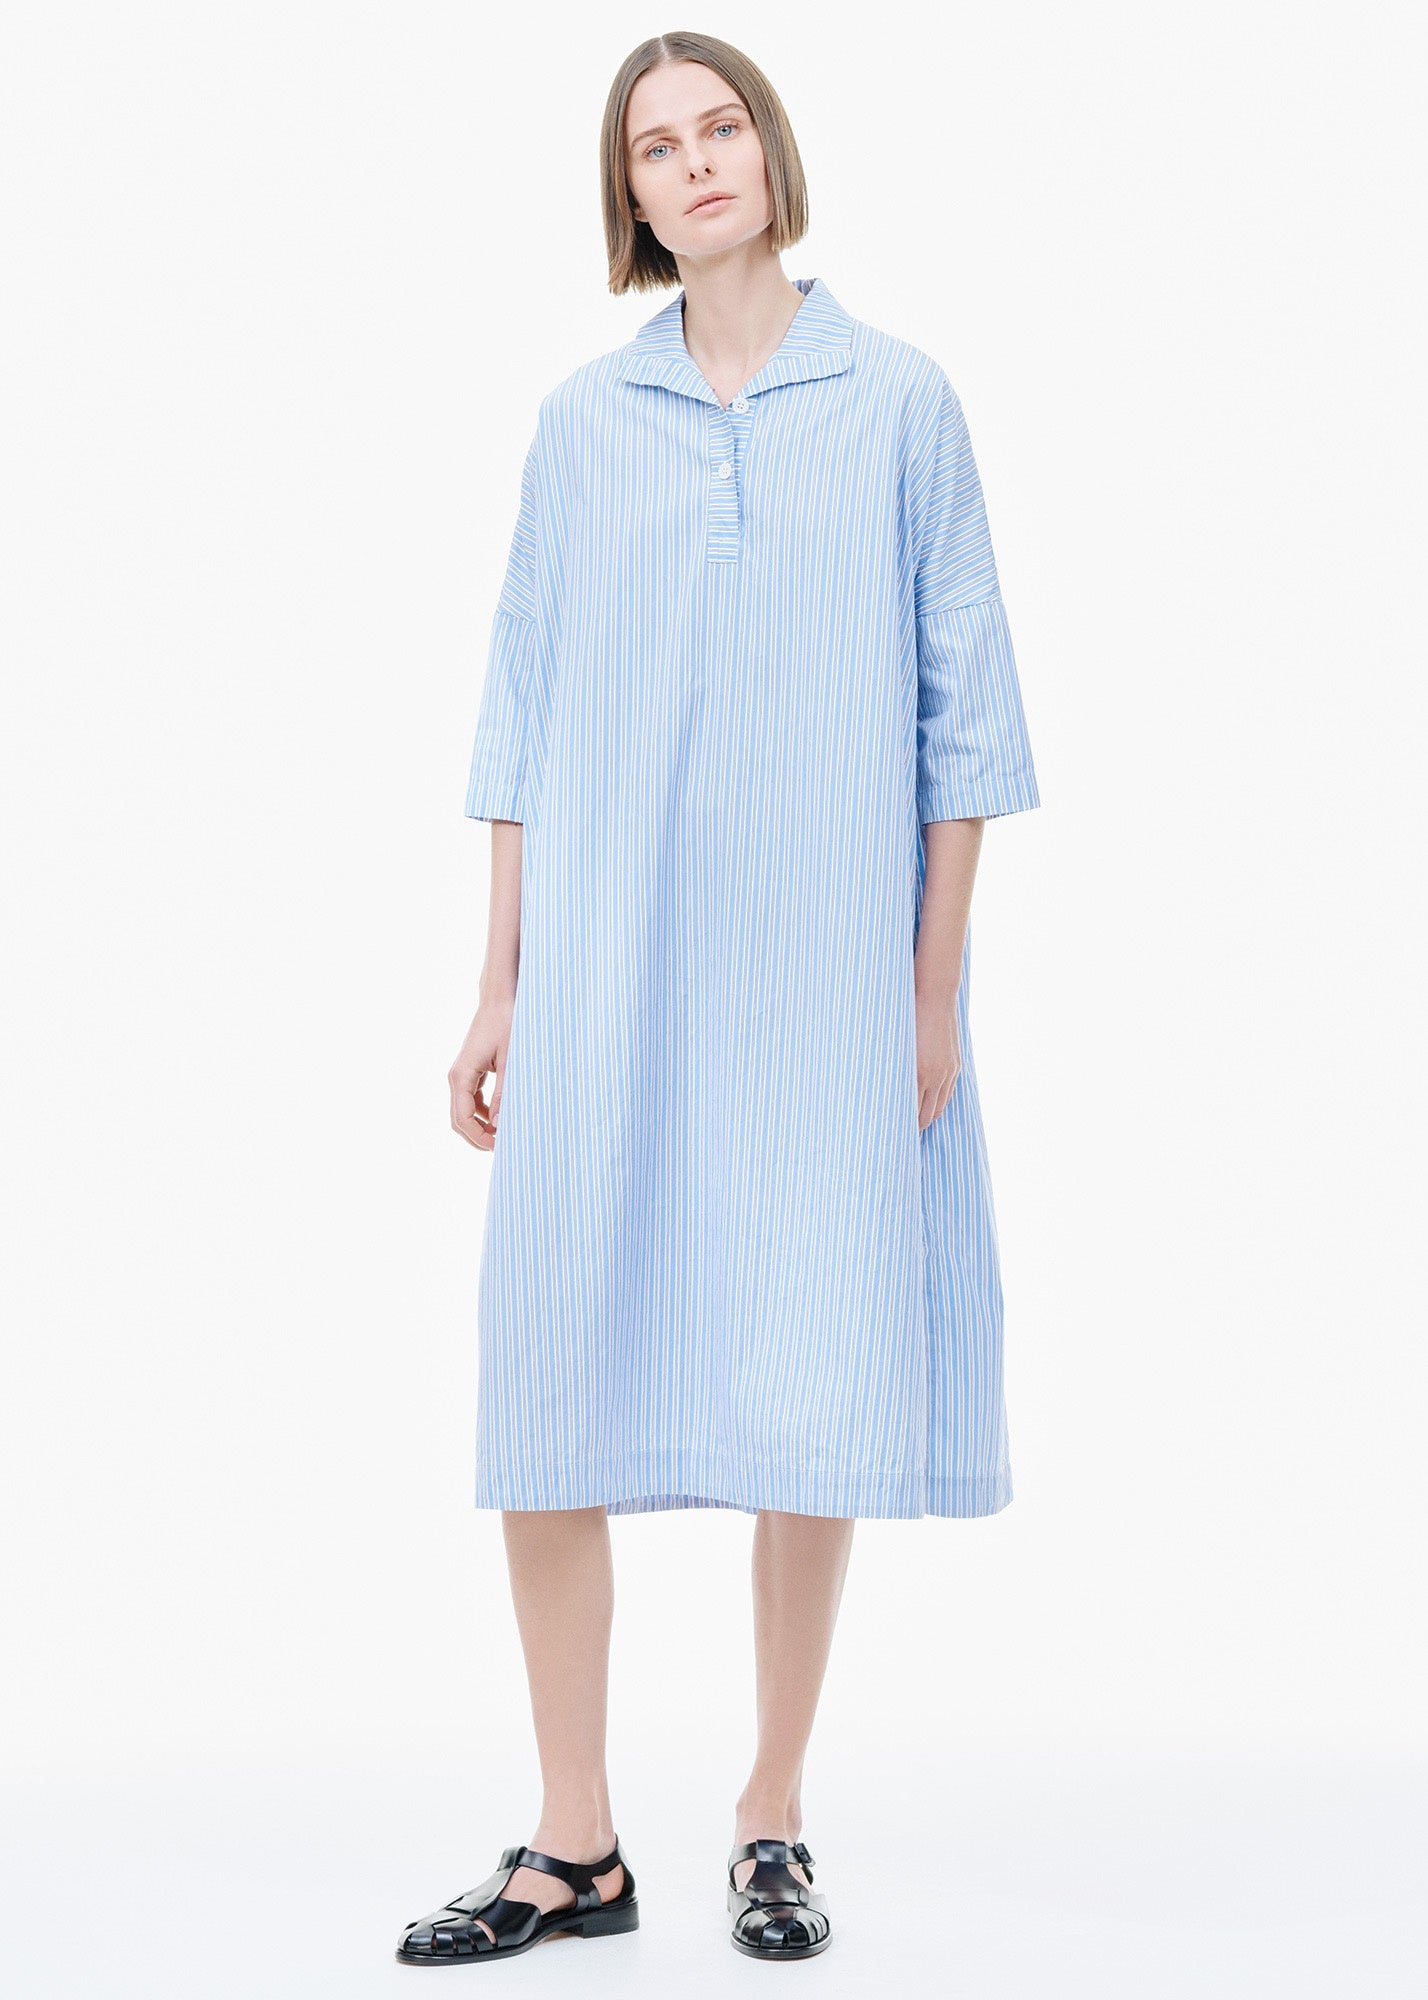 Nery Dress Blue/ White Stripe